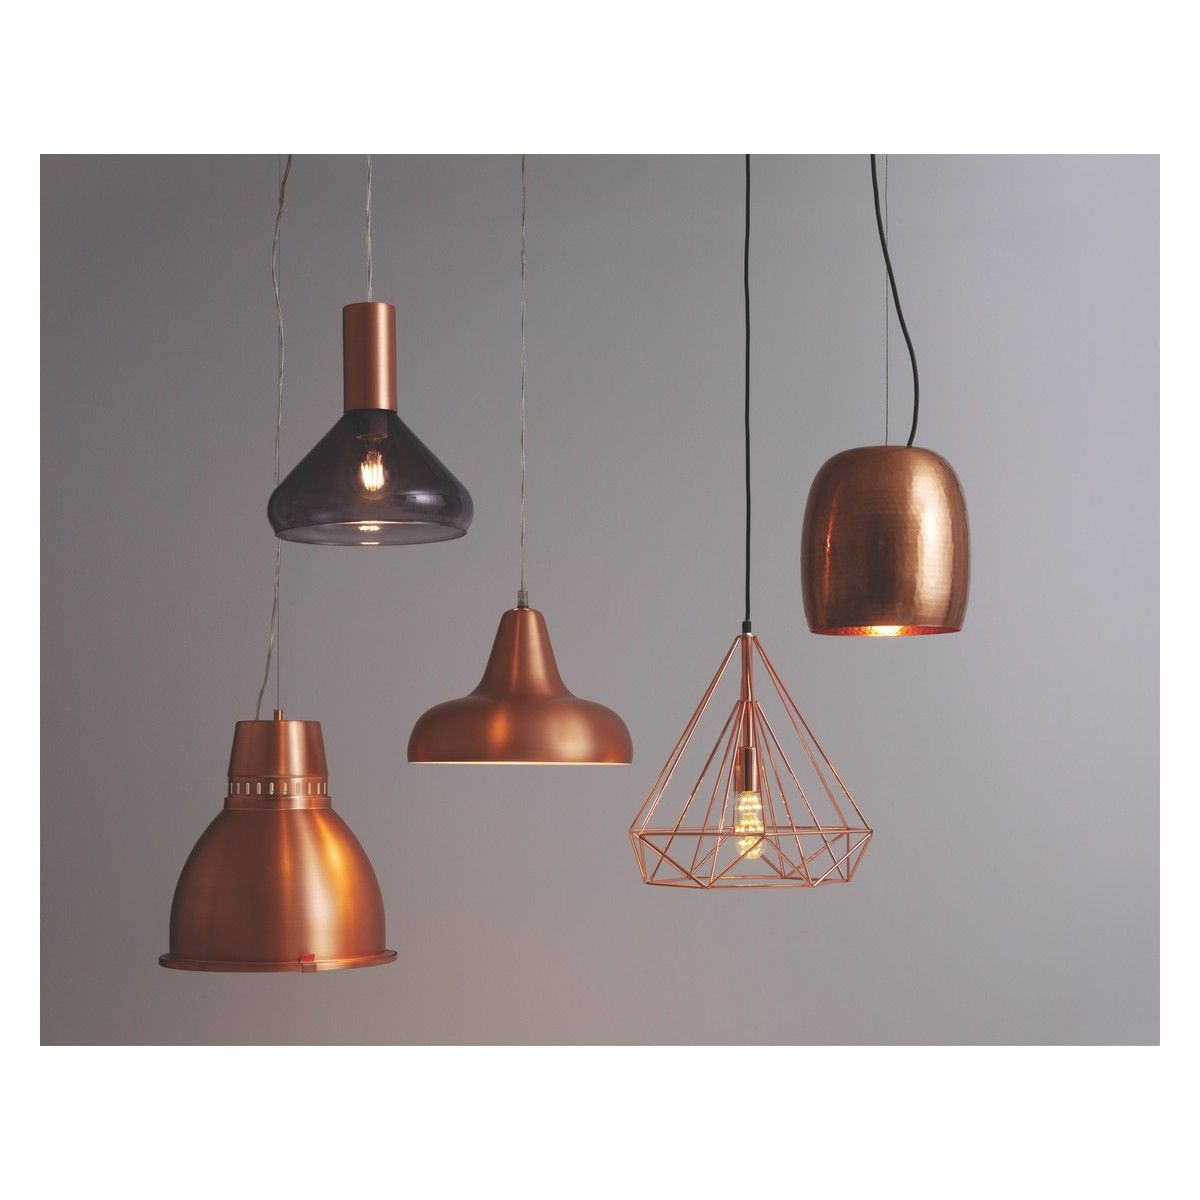 Marteau copper mini metal ceiling light copper accessories marteau copper mini metal ceiling light aloadofball Gallery